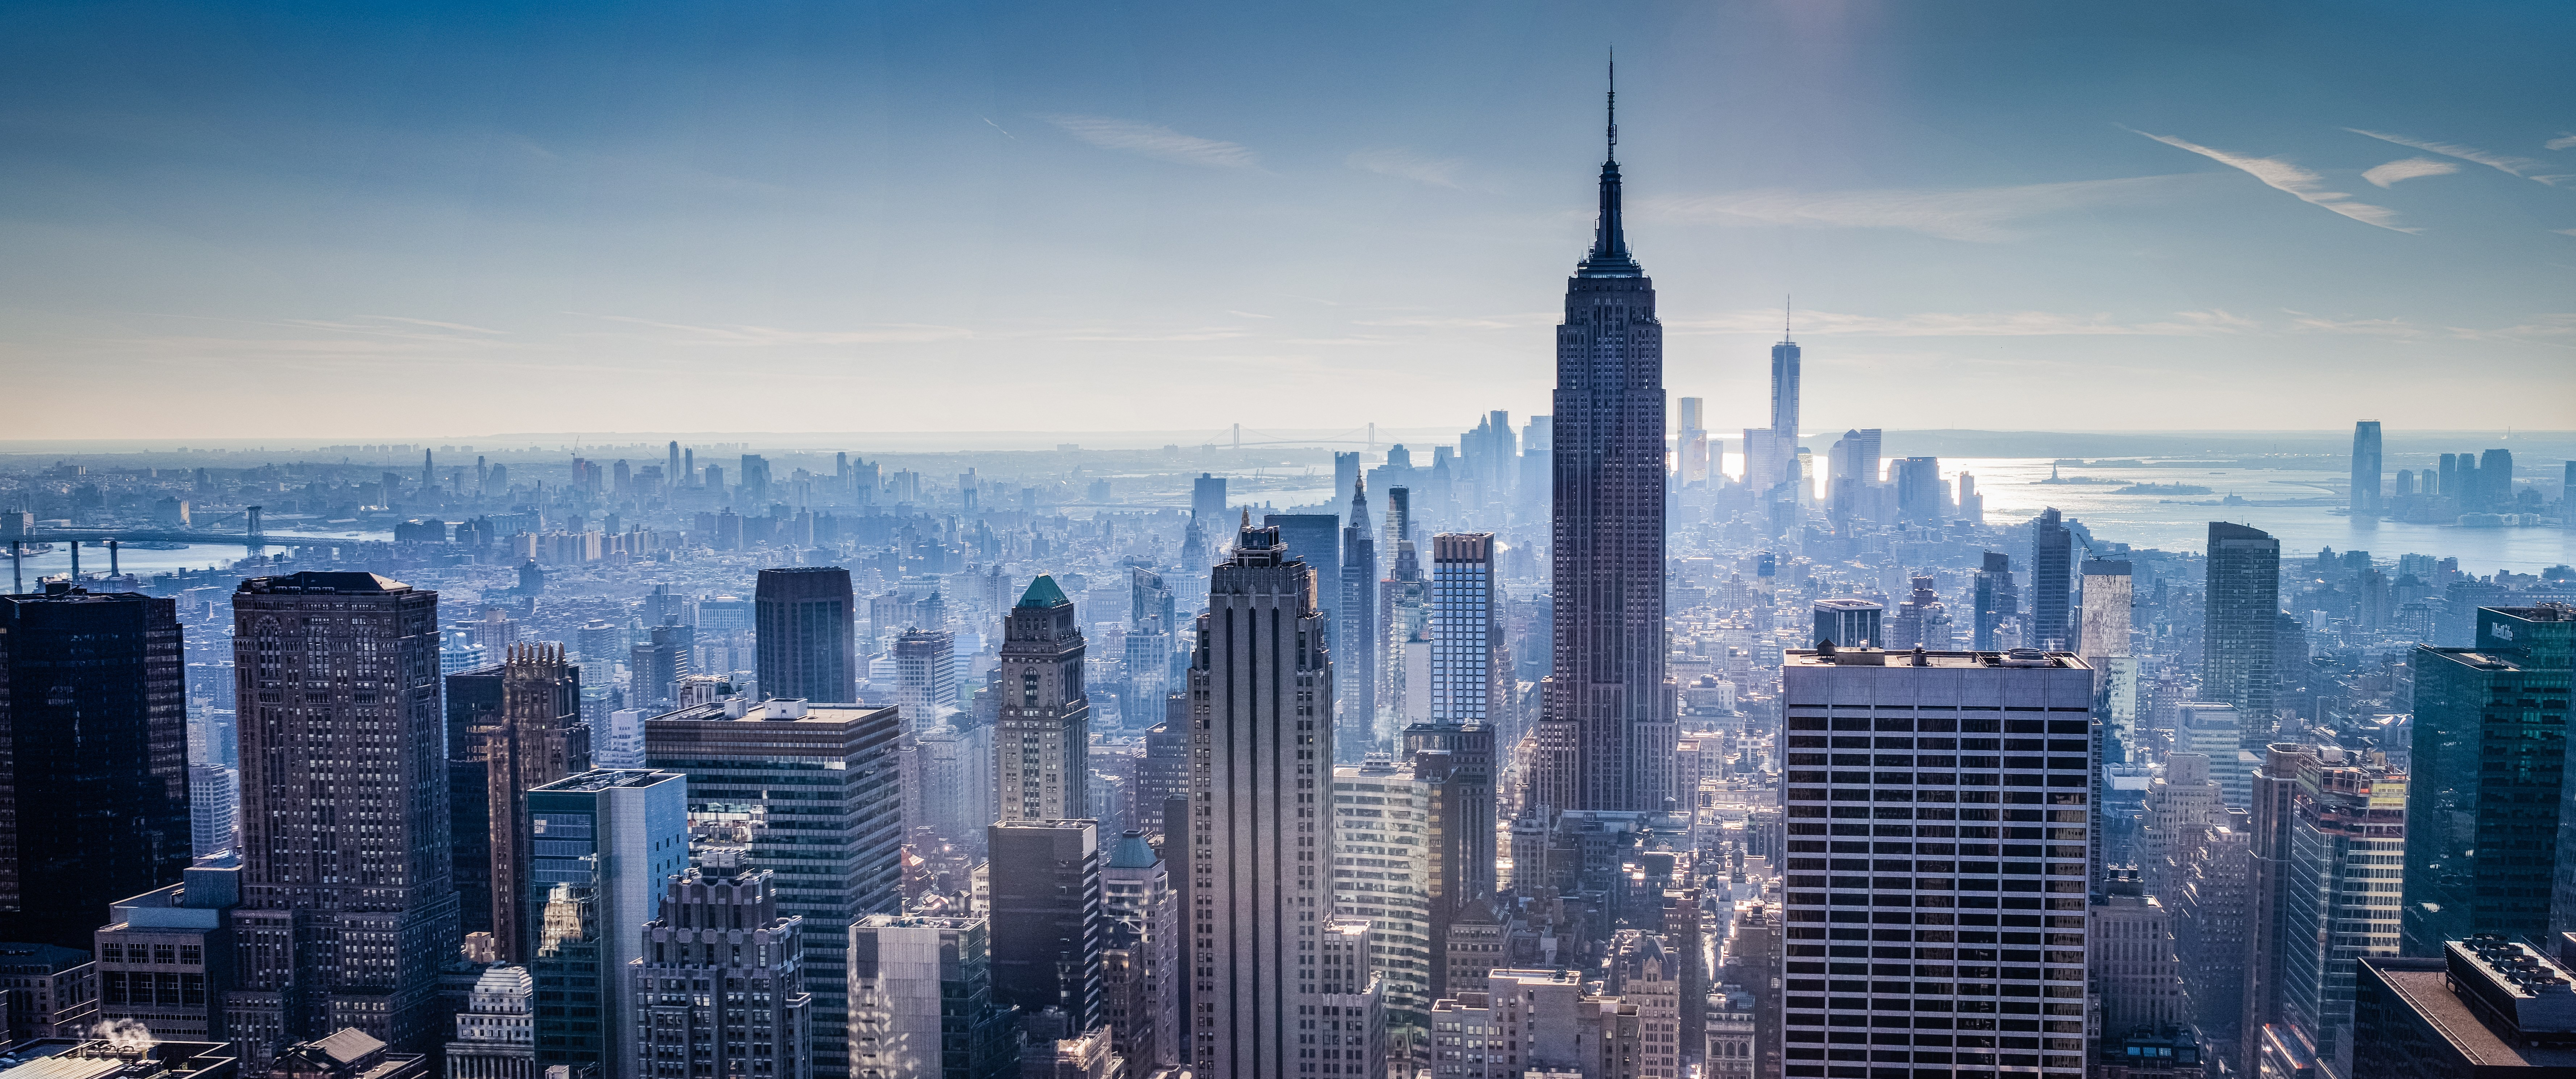 New York City Wide 8k Hd World 4k Wallpapers Images